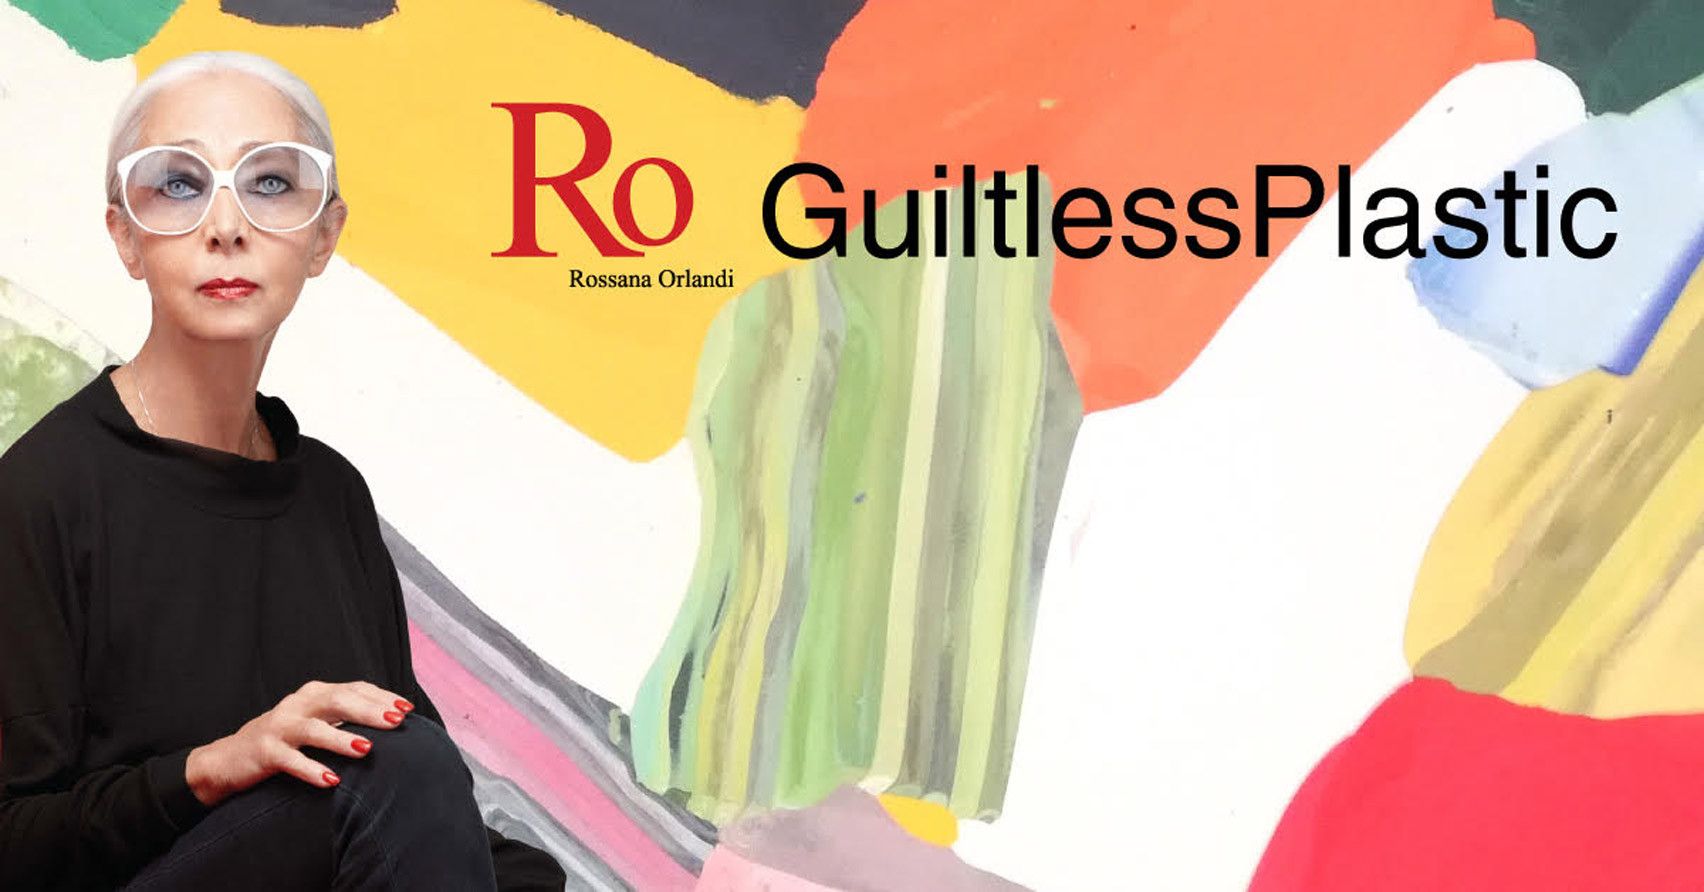 Poster of the Guiltless plastic competition.